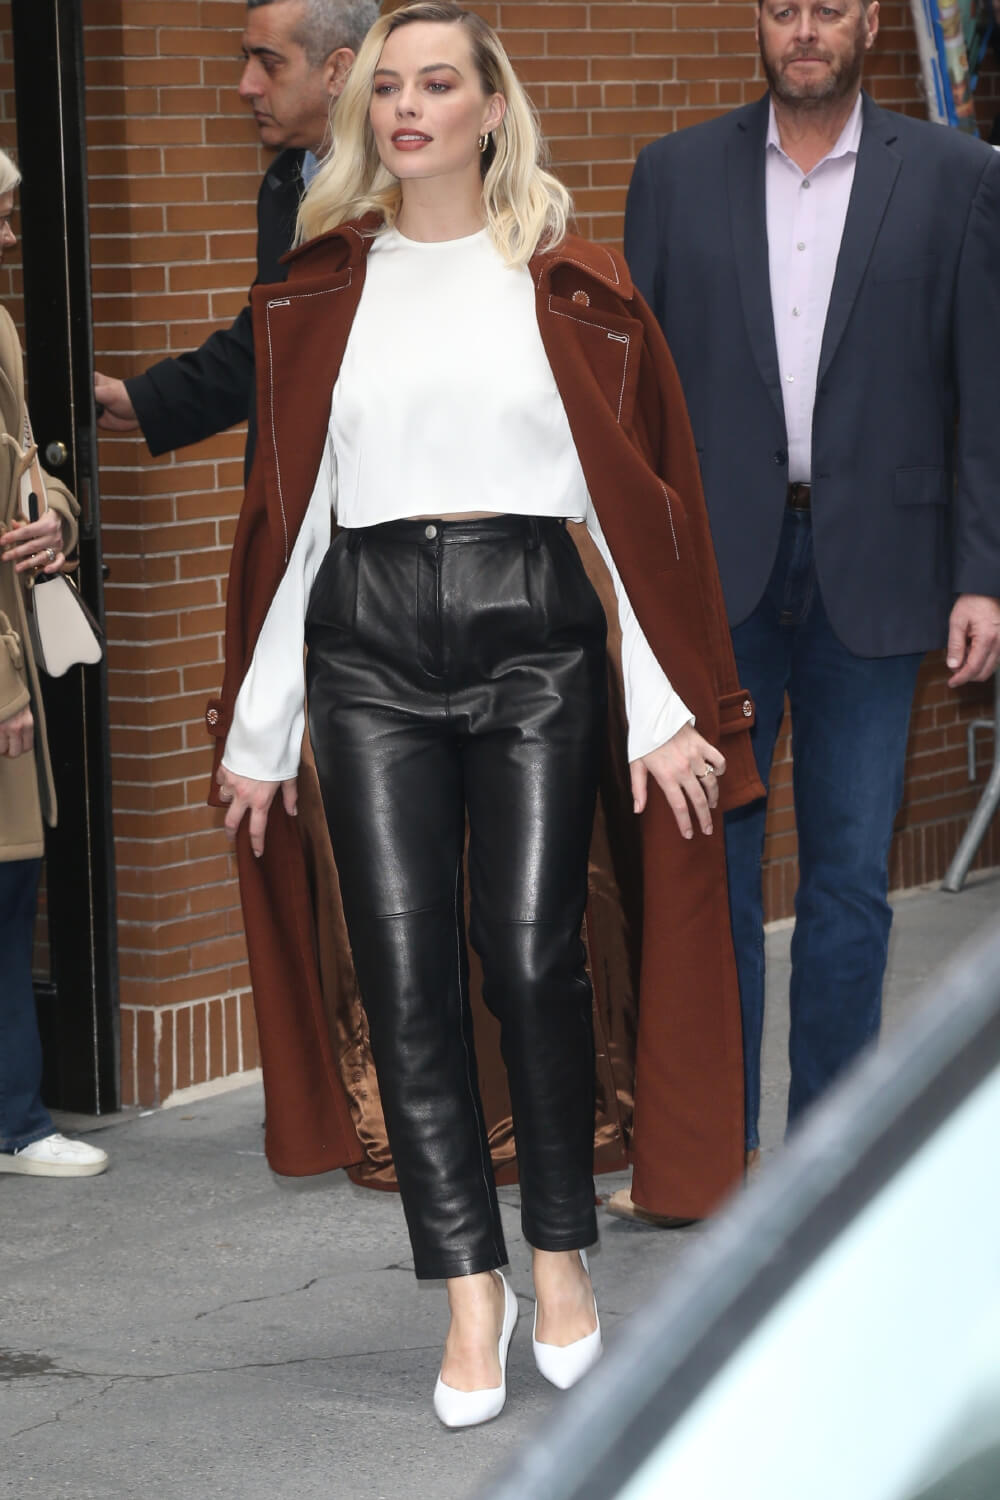 Margot Robbie doing promo in NYC